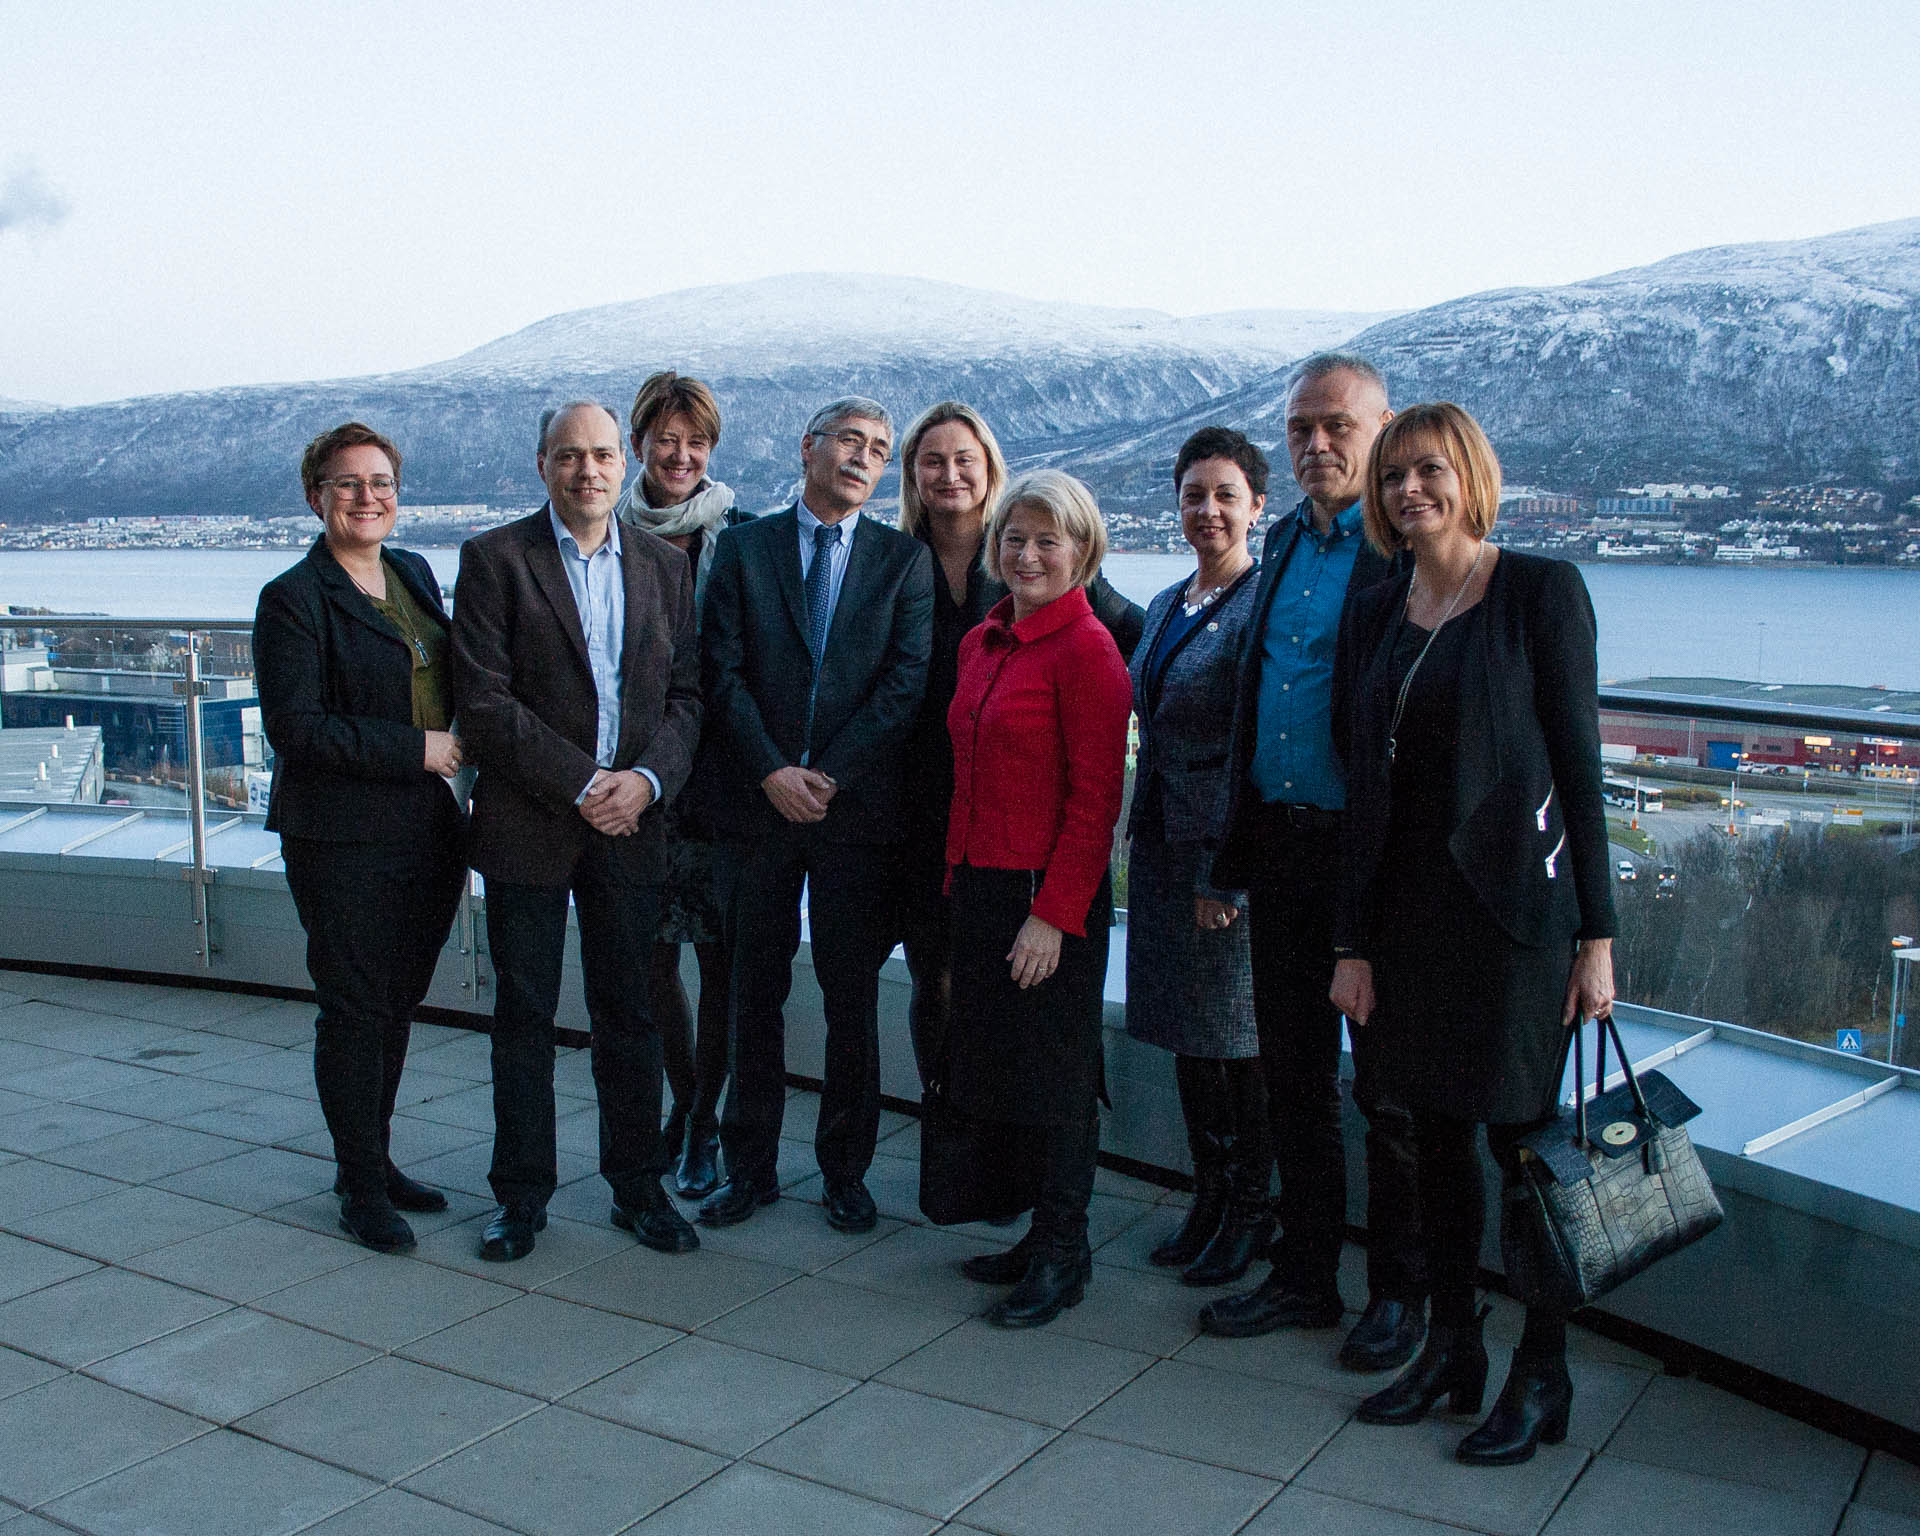 Technology building at UiT. From left: Elisabeth Blix Bakkelund (Research Council of Norway, Regional representative in Troms), Kjell Arild Høgda (Research director, NORUT), Wenche Jakobsen (Pro-Rector for Education, UiT), Torbjørn Eltoft (Center leader of CIRFA), Dilek Ayhan (State Secretary of Trade, Industry and Fisheries), Anne Husebekk (Rector at UiT), Nalân Koç (Research director, Norwegian Polar Institute), Jan Petter Pedersen (Vice President, KSAT), Elise Husum (Deputy Director of Research Council of Norway). Photo: Torger Grytå